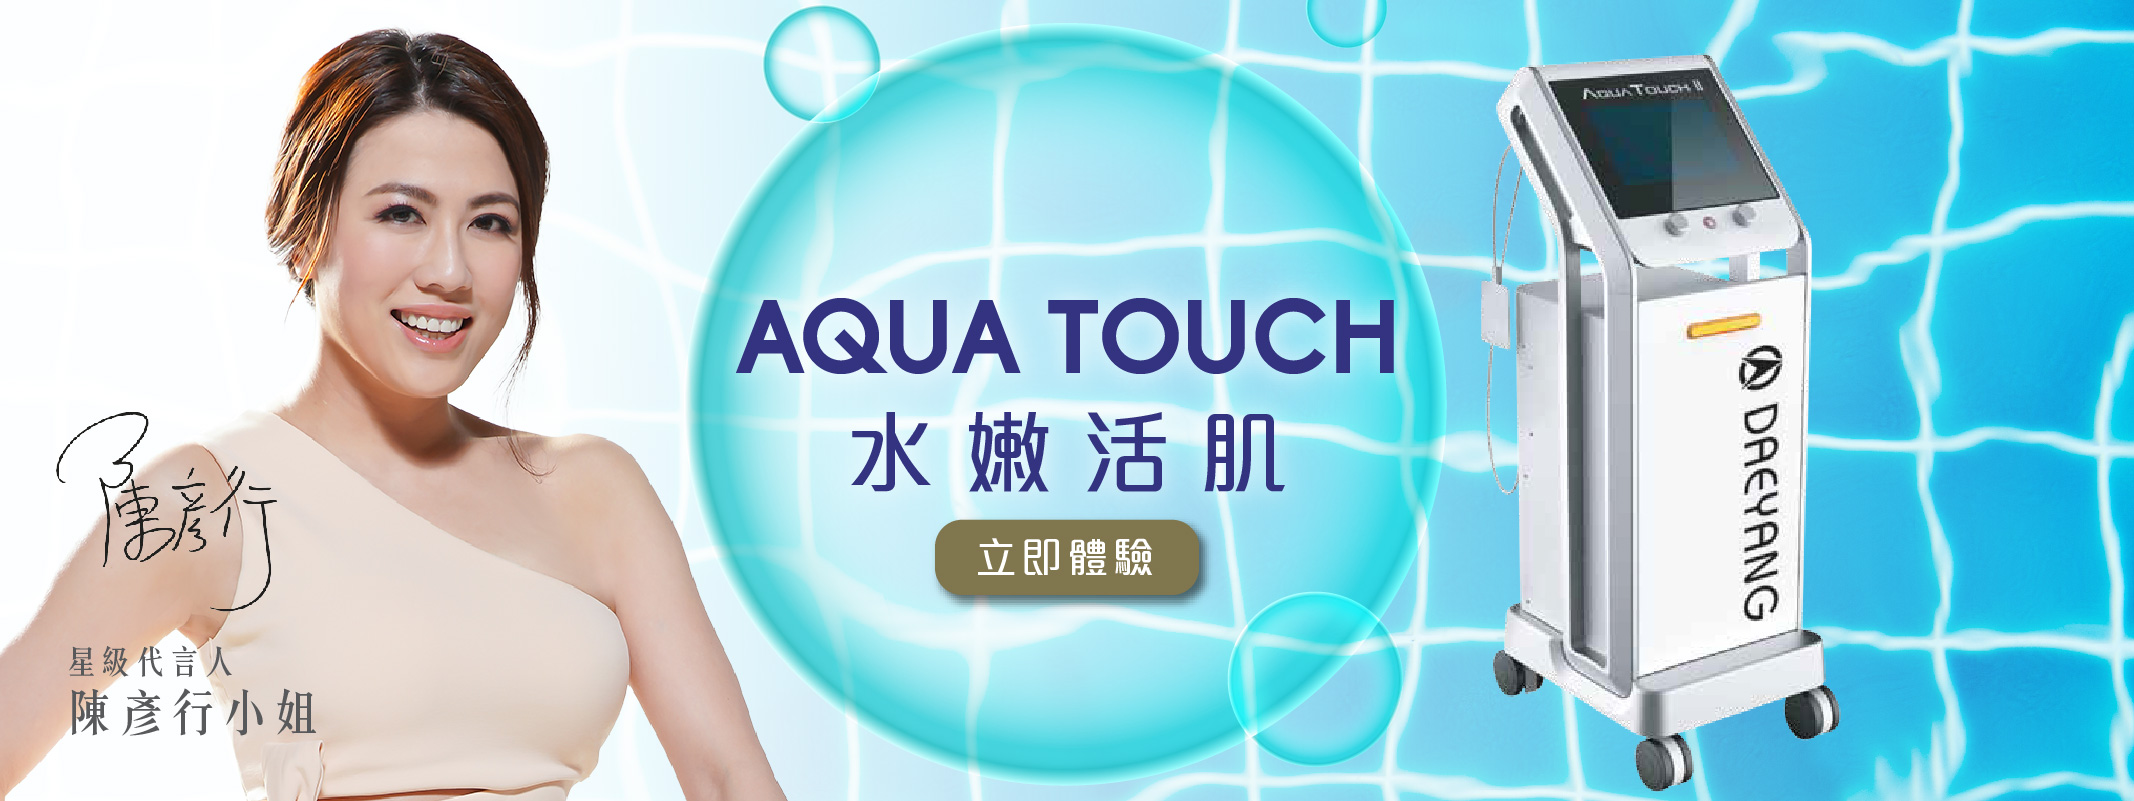 le-domes-website_side_v2_aqua-touch-